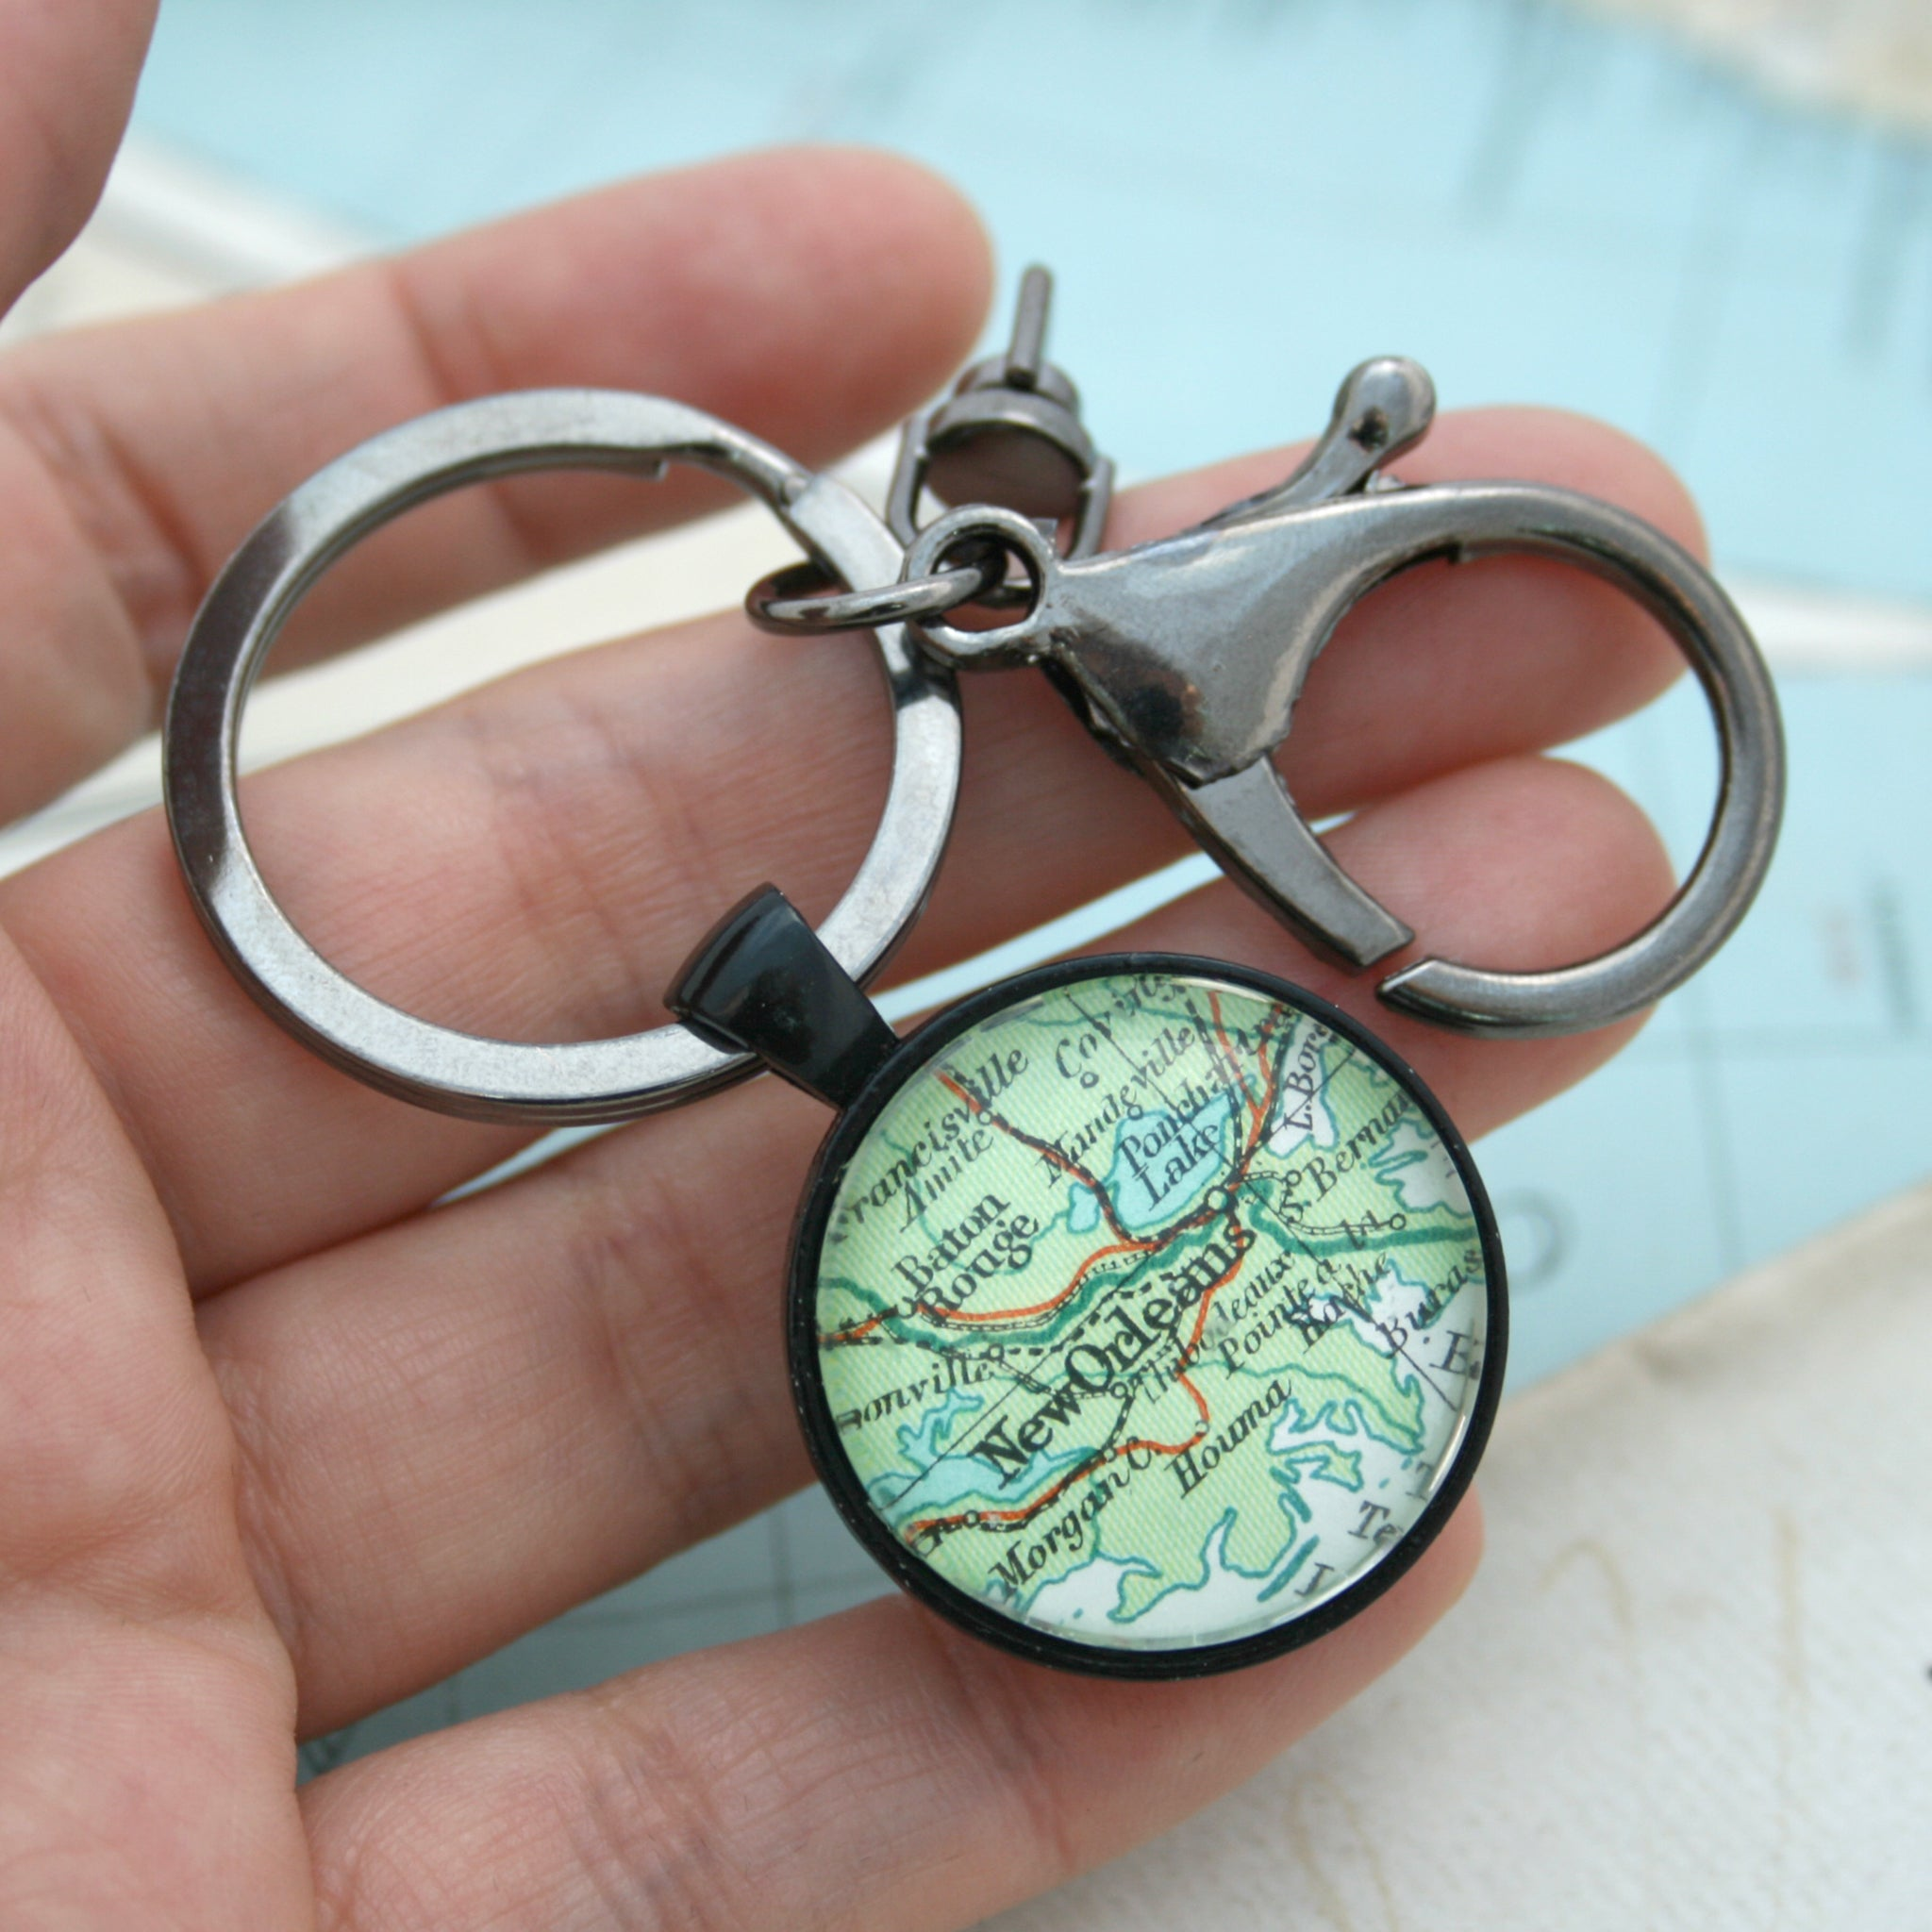 Hold in hand personalised keyring in black color featuring map of New Orleans